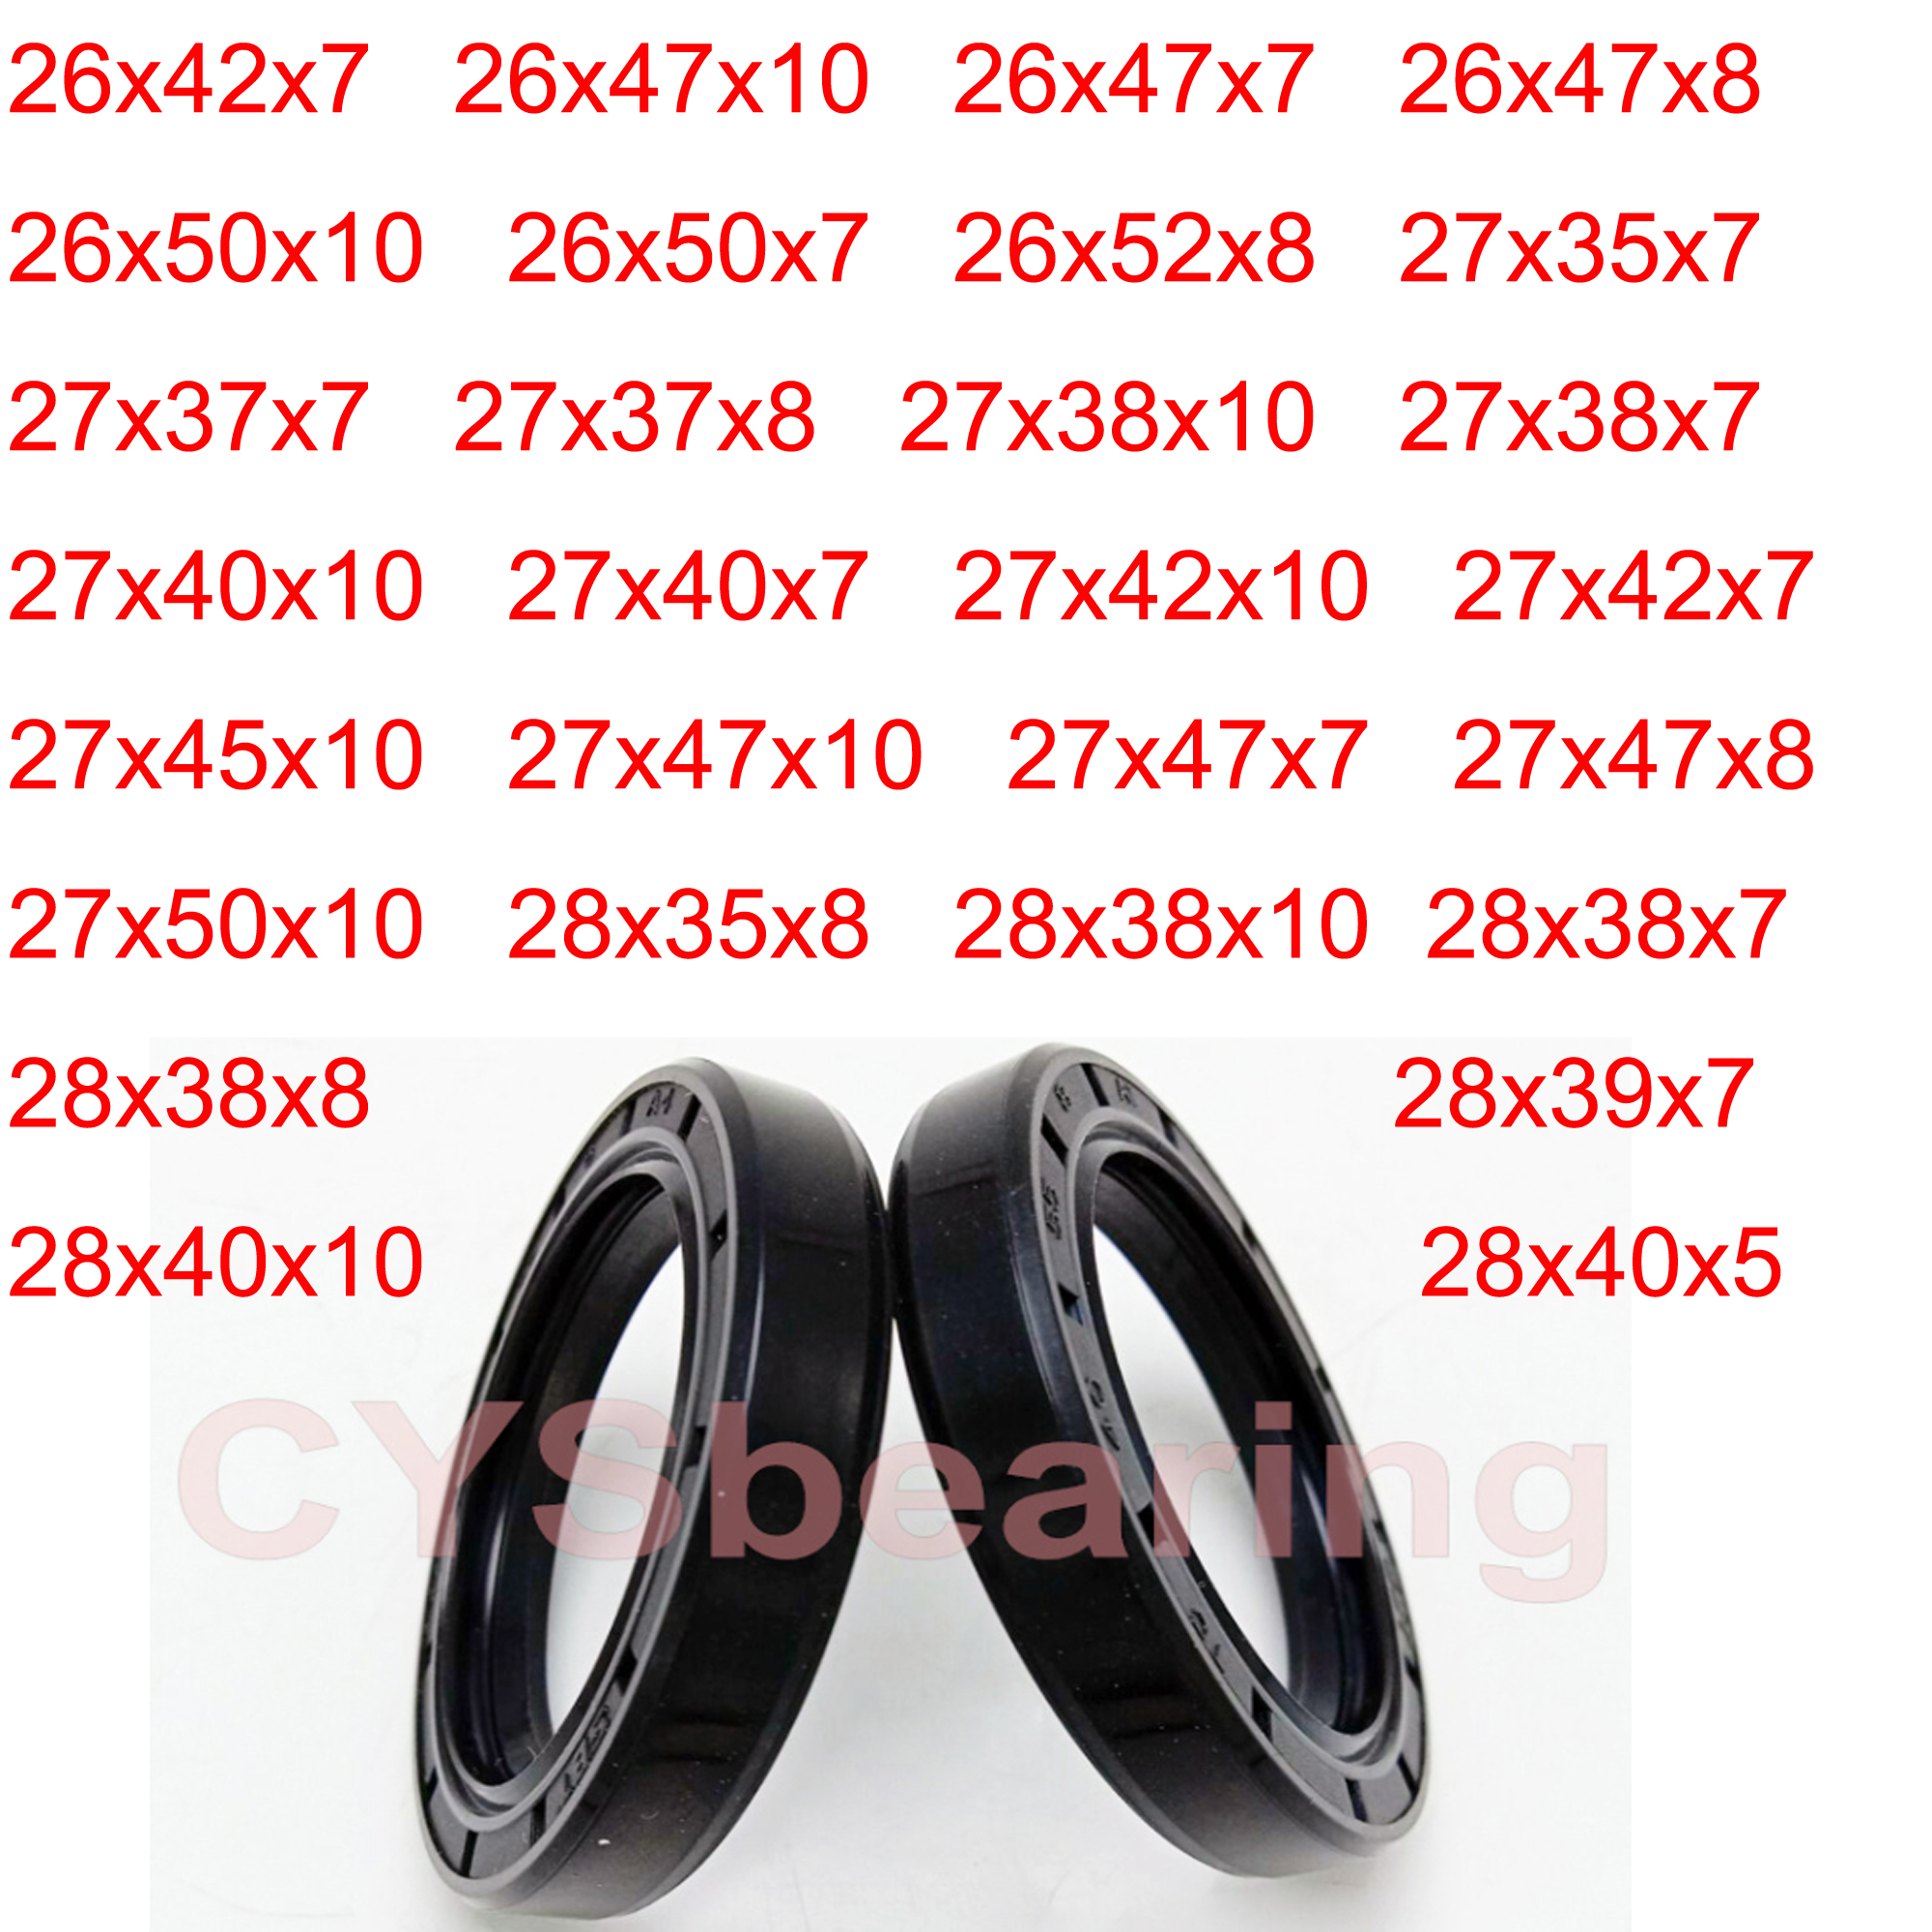 OIL SEAL ROTARY SHAFT 38MM SHAFT CHOOSE YOUR SIZE